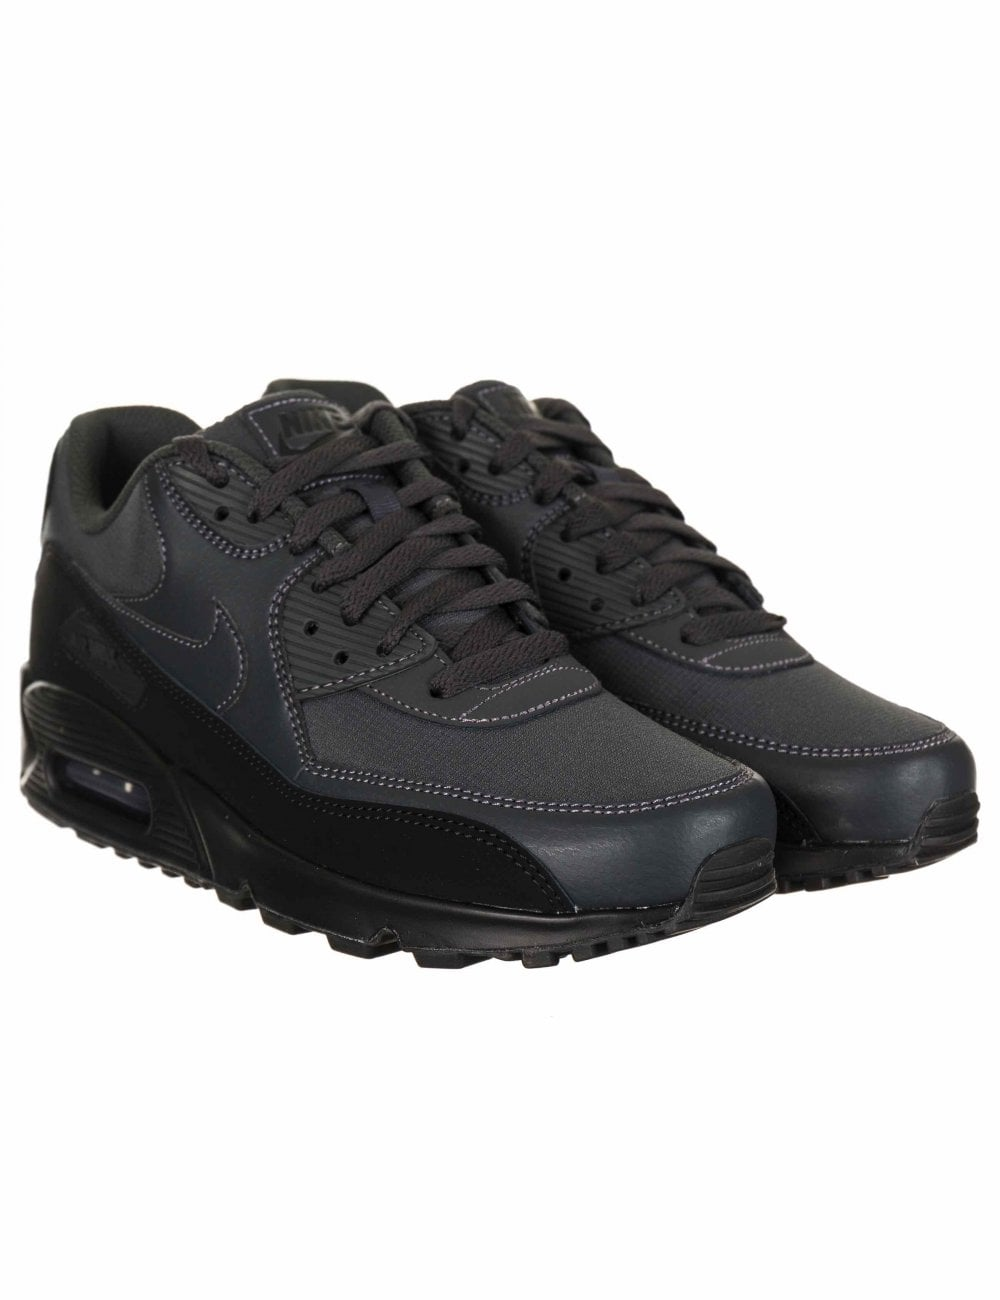 db09a43347 Nike Air Max 90 Essential Trainers - Black/Anthracite - Footwear ...